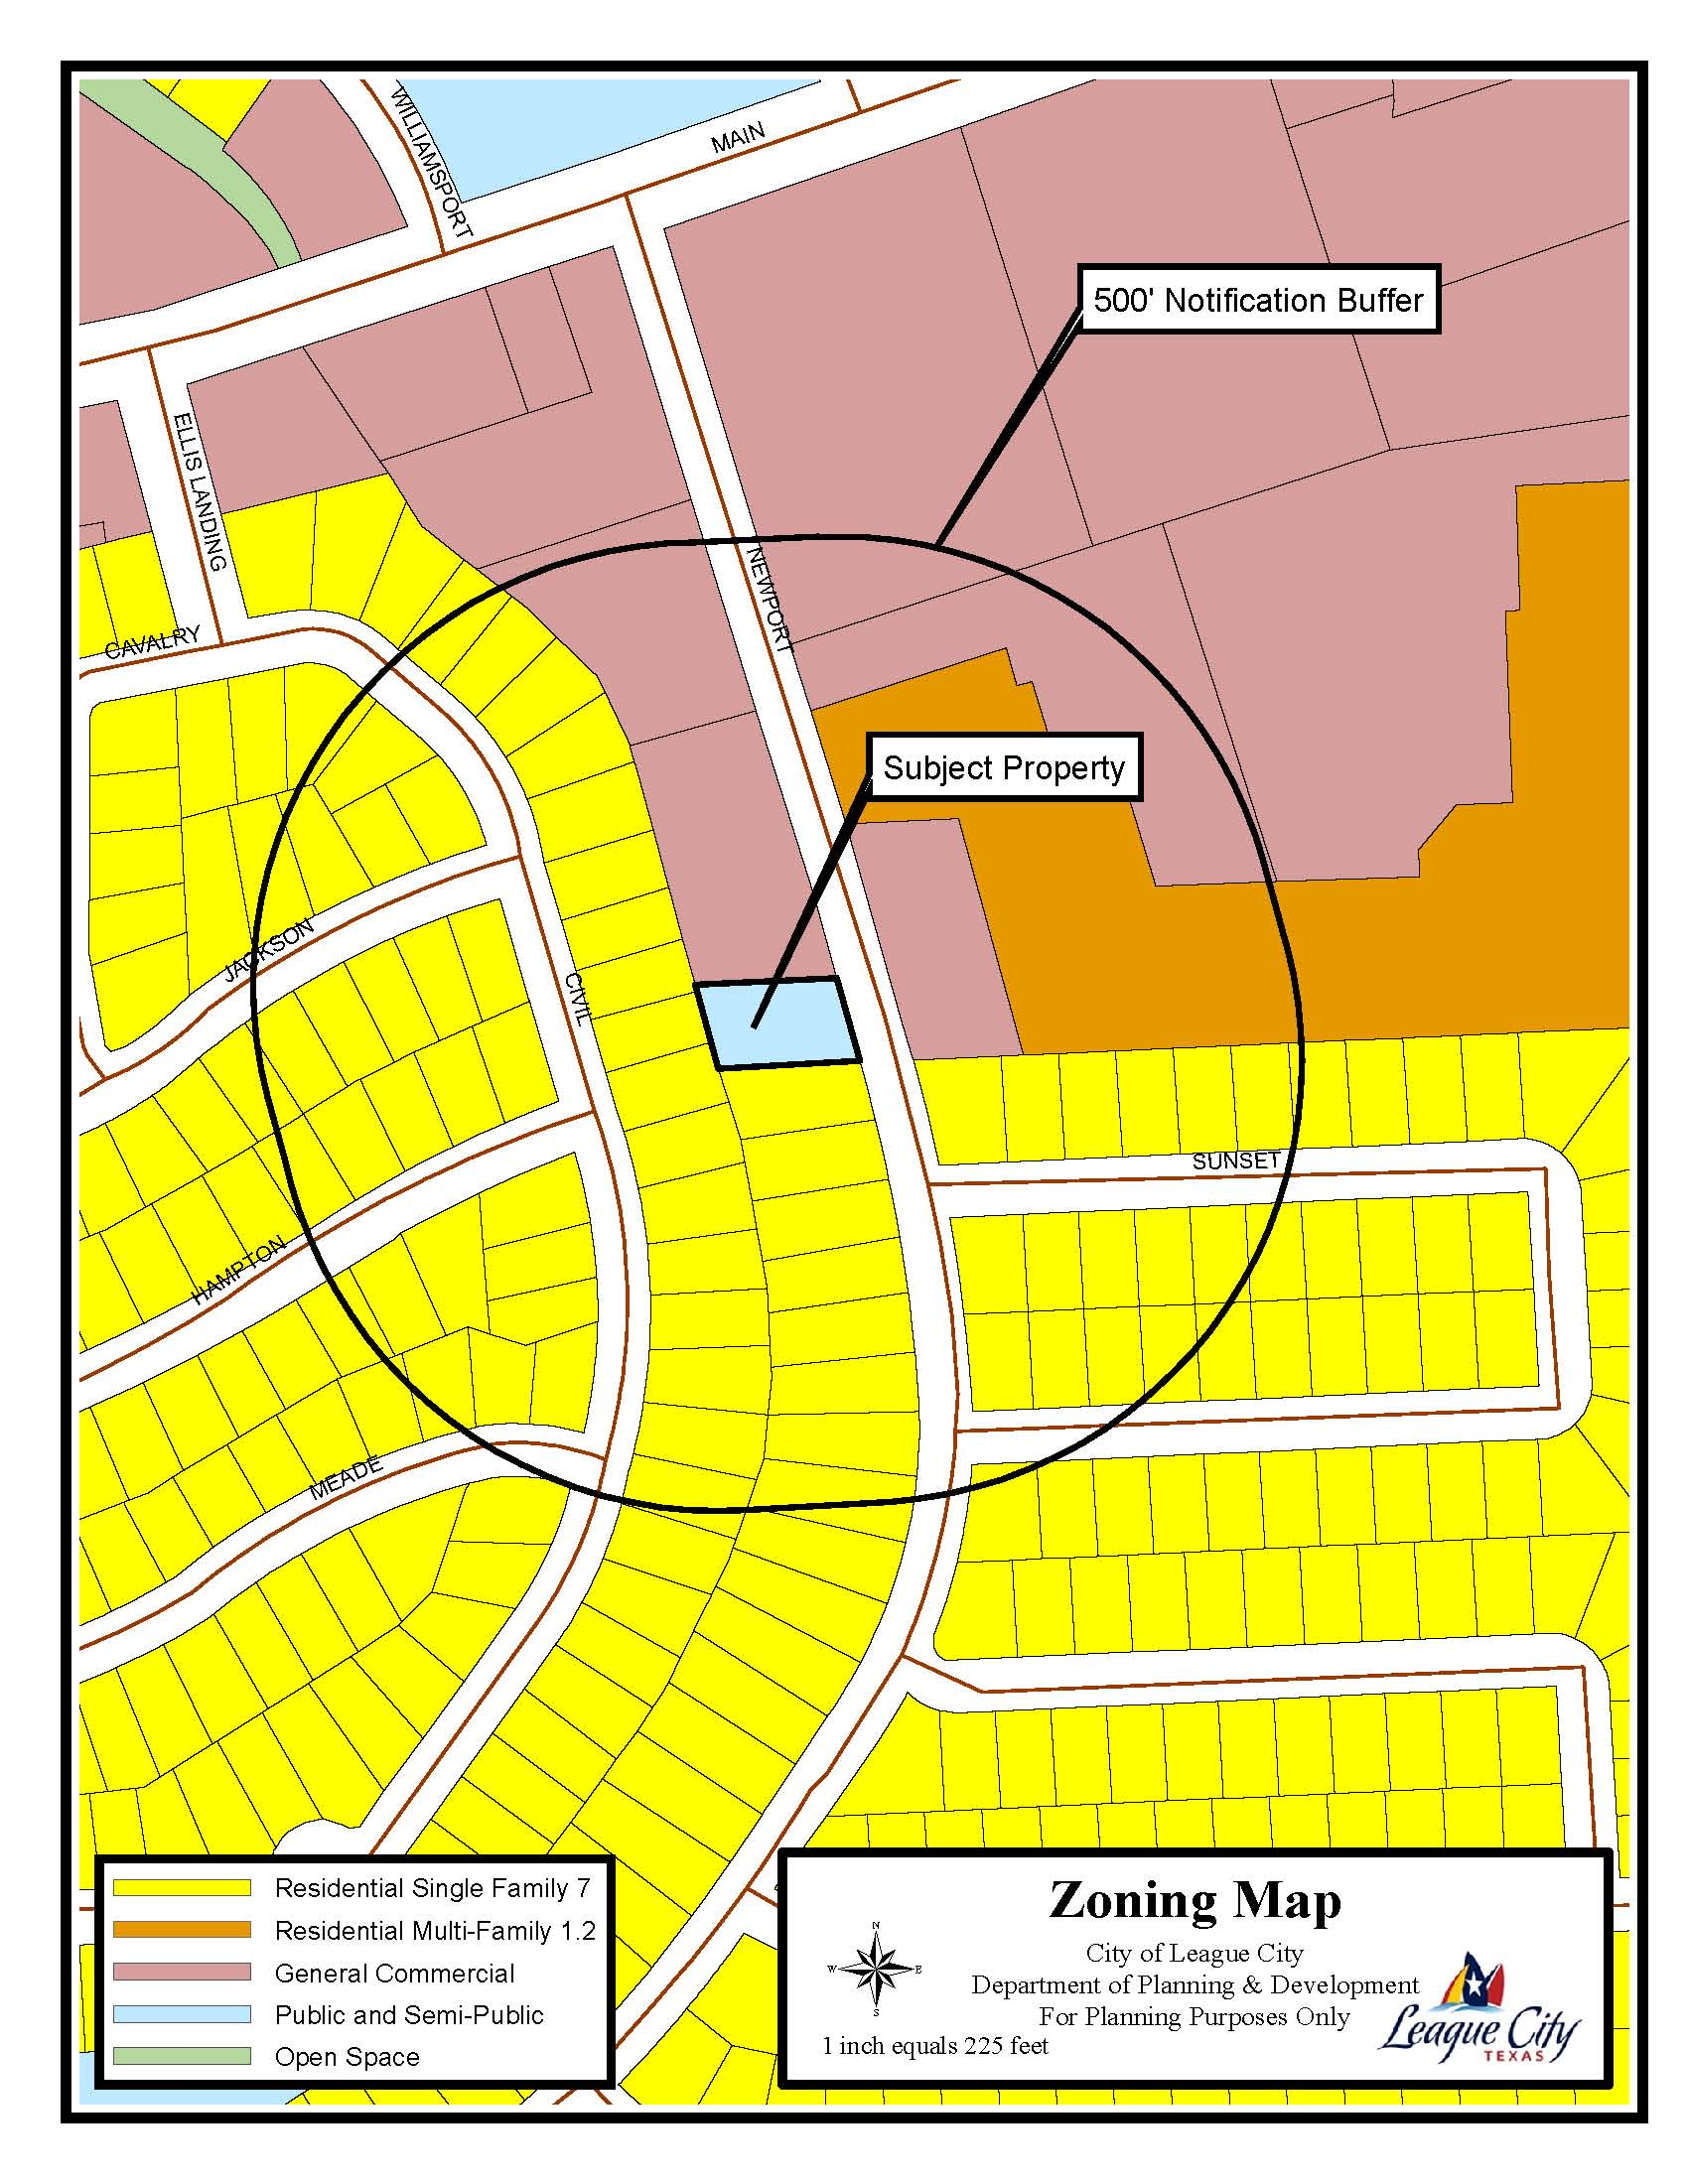 355 Newport Boulevard Zoning Map